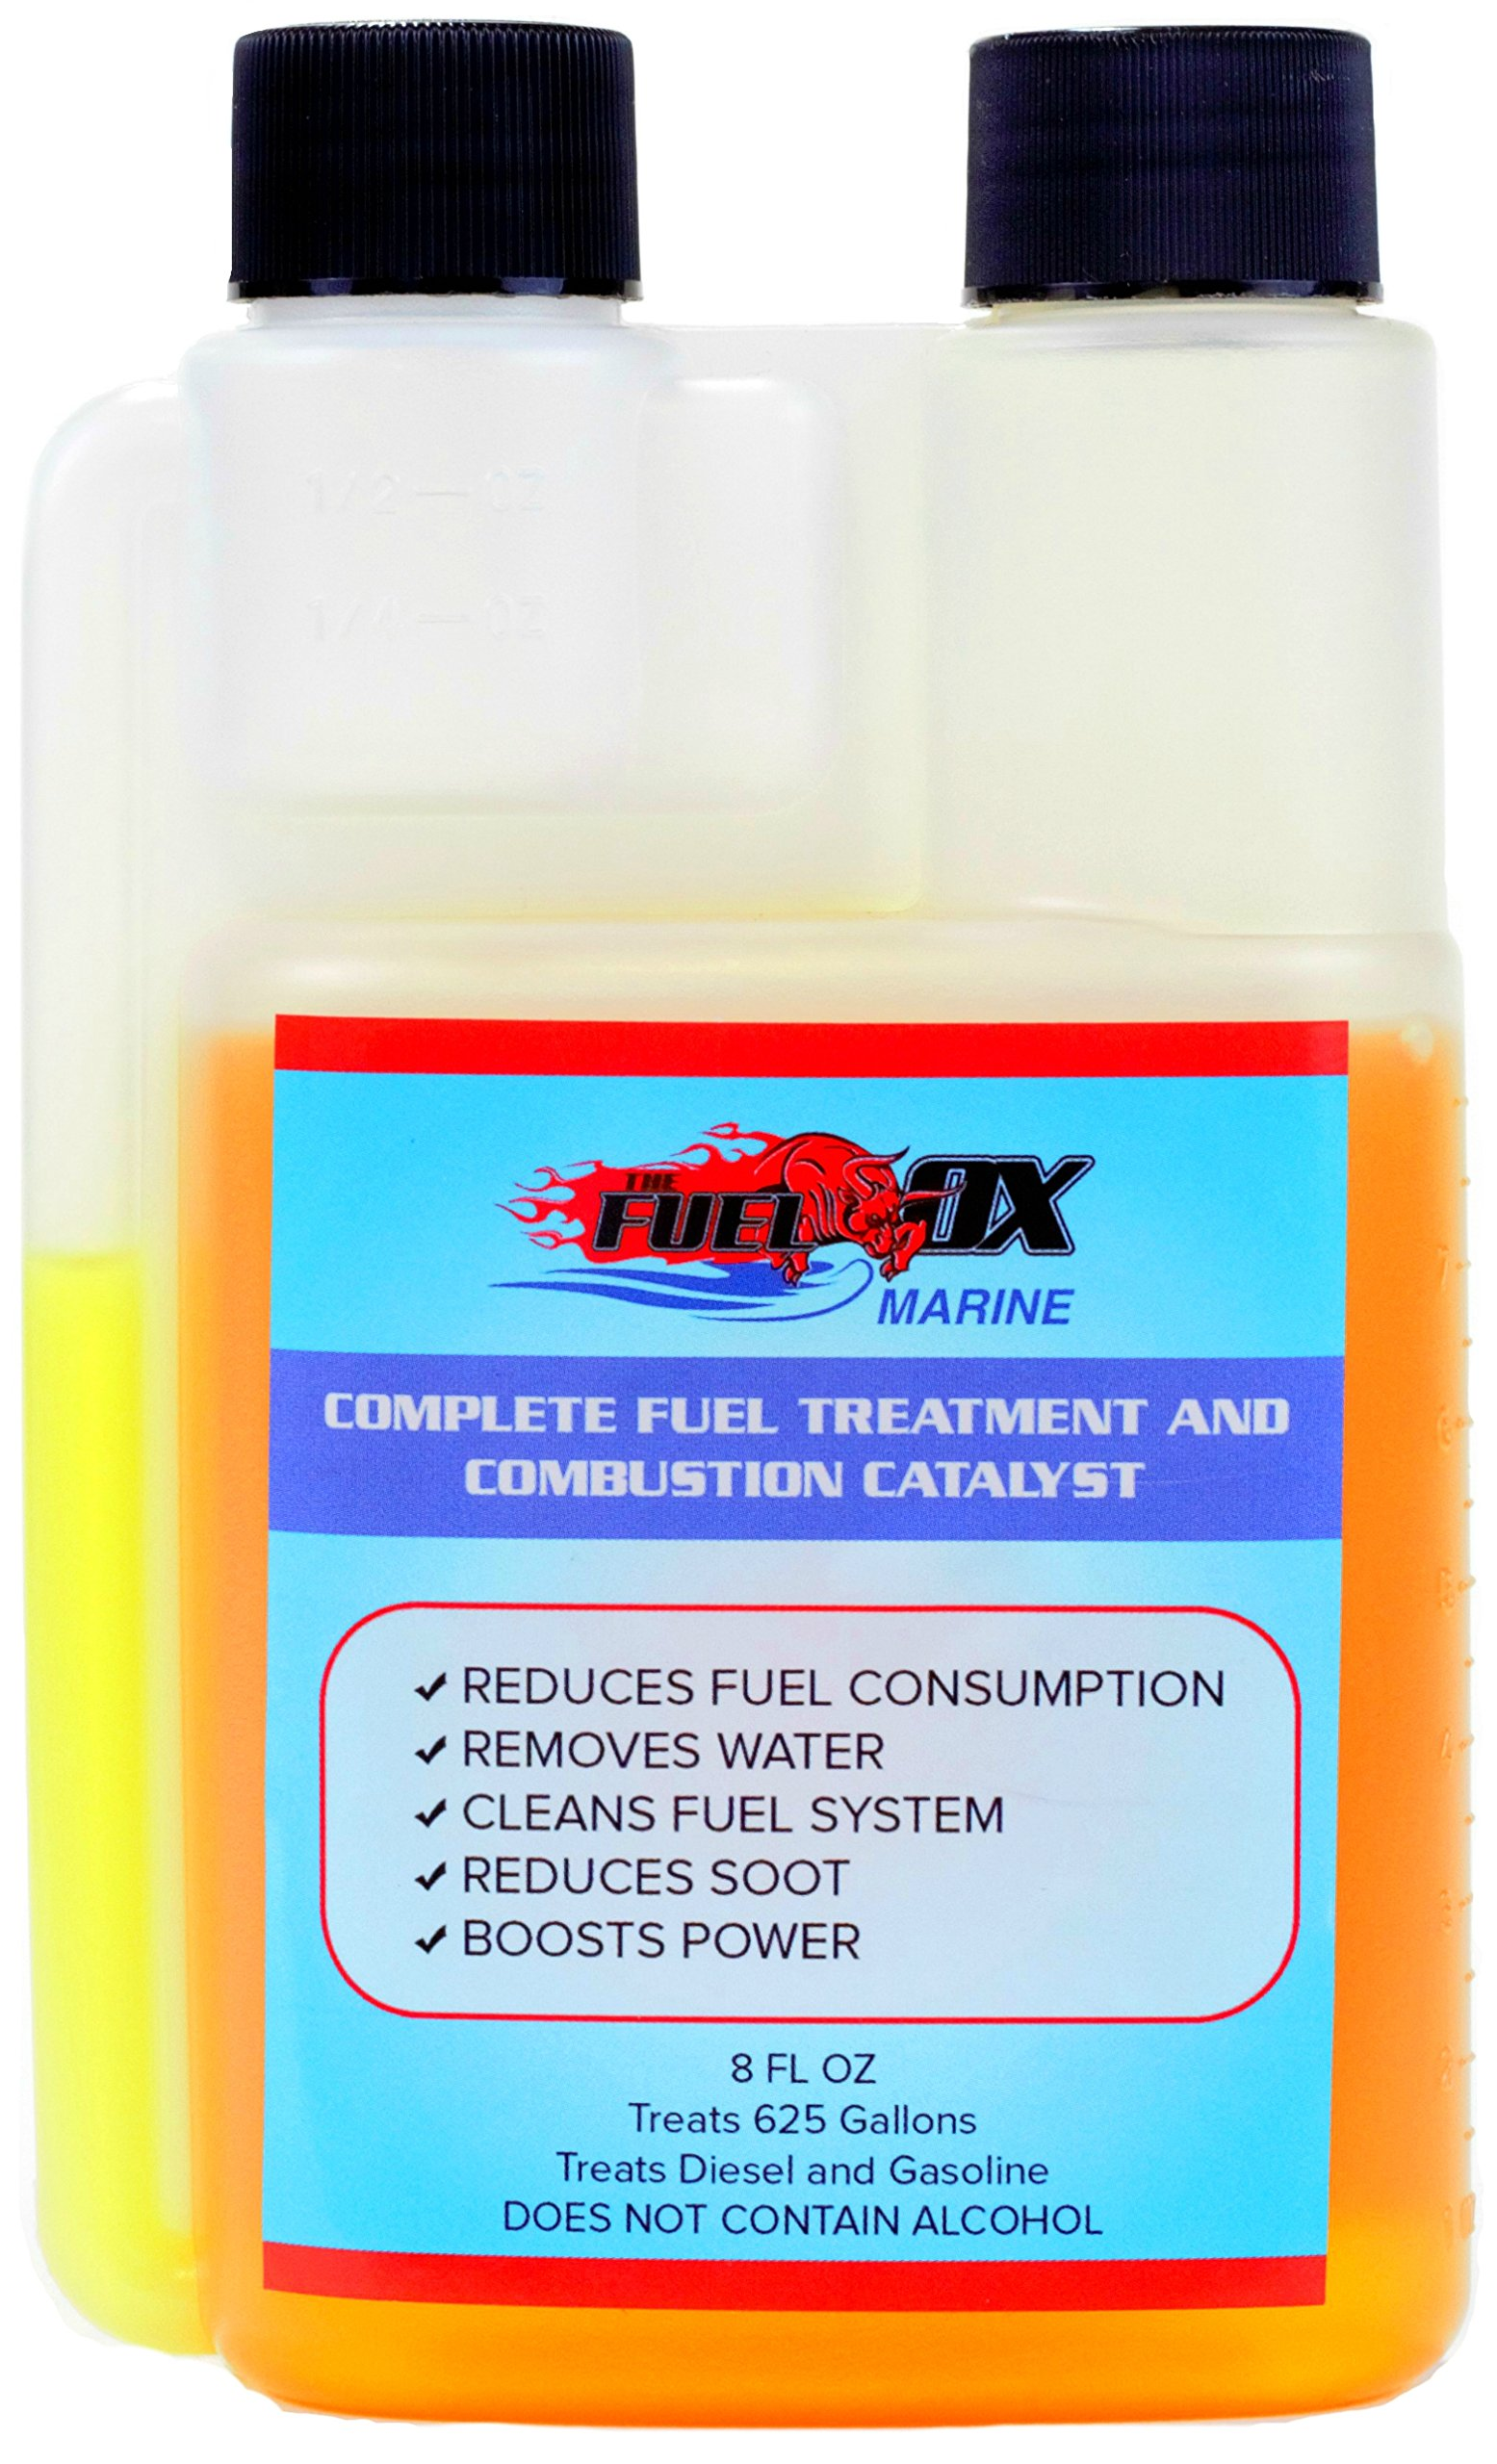 Fuel Ox Marine - Complete Fuel Treatment and Combustion Catalyst - Fuel Additive for Gas or Diesel - For Inboard or Outboard Motors - Treats Fuel For Boats or Jet Skis - 8oz Bottle